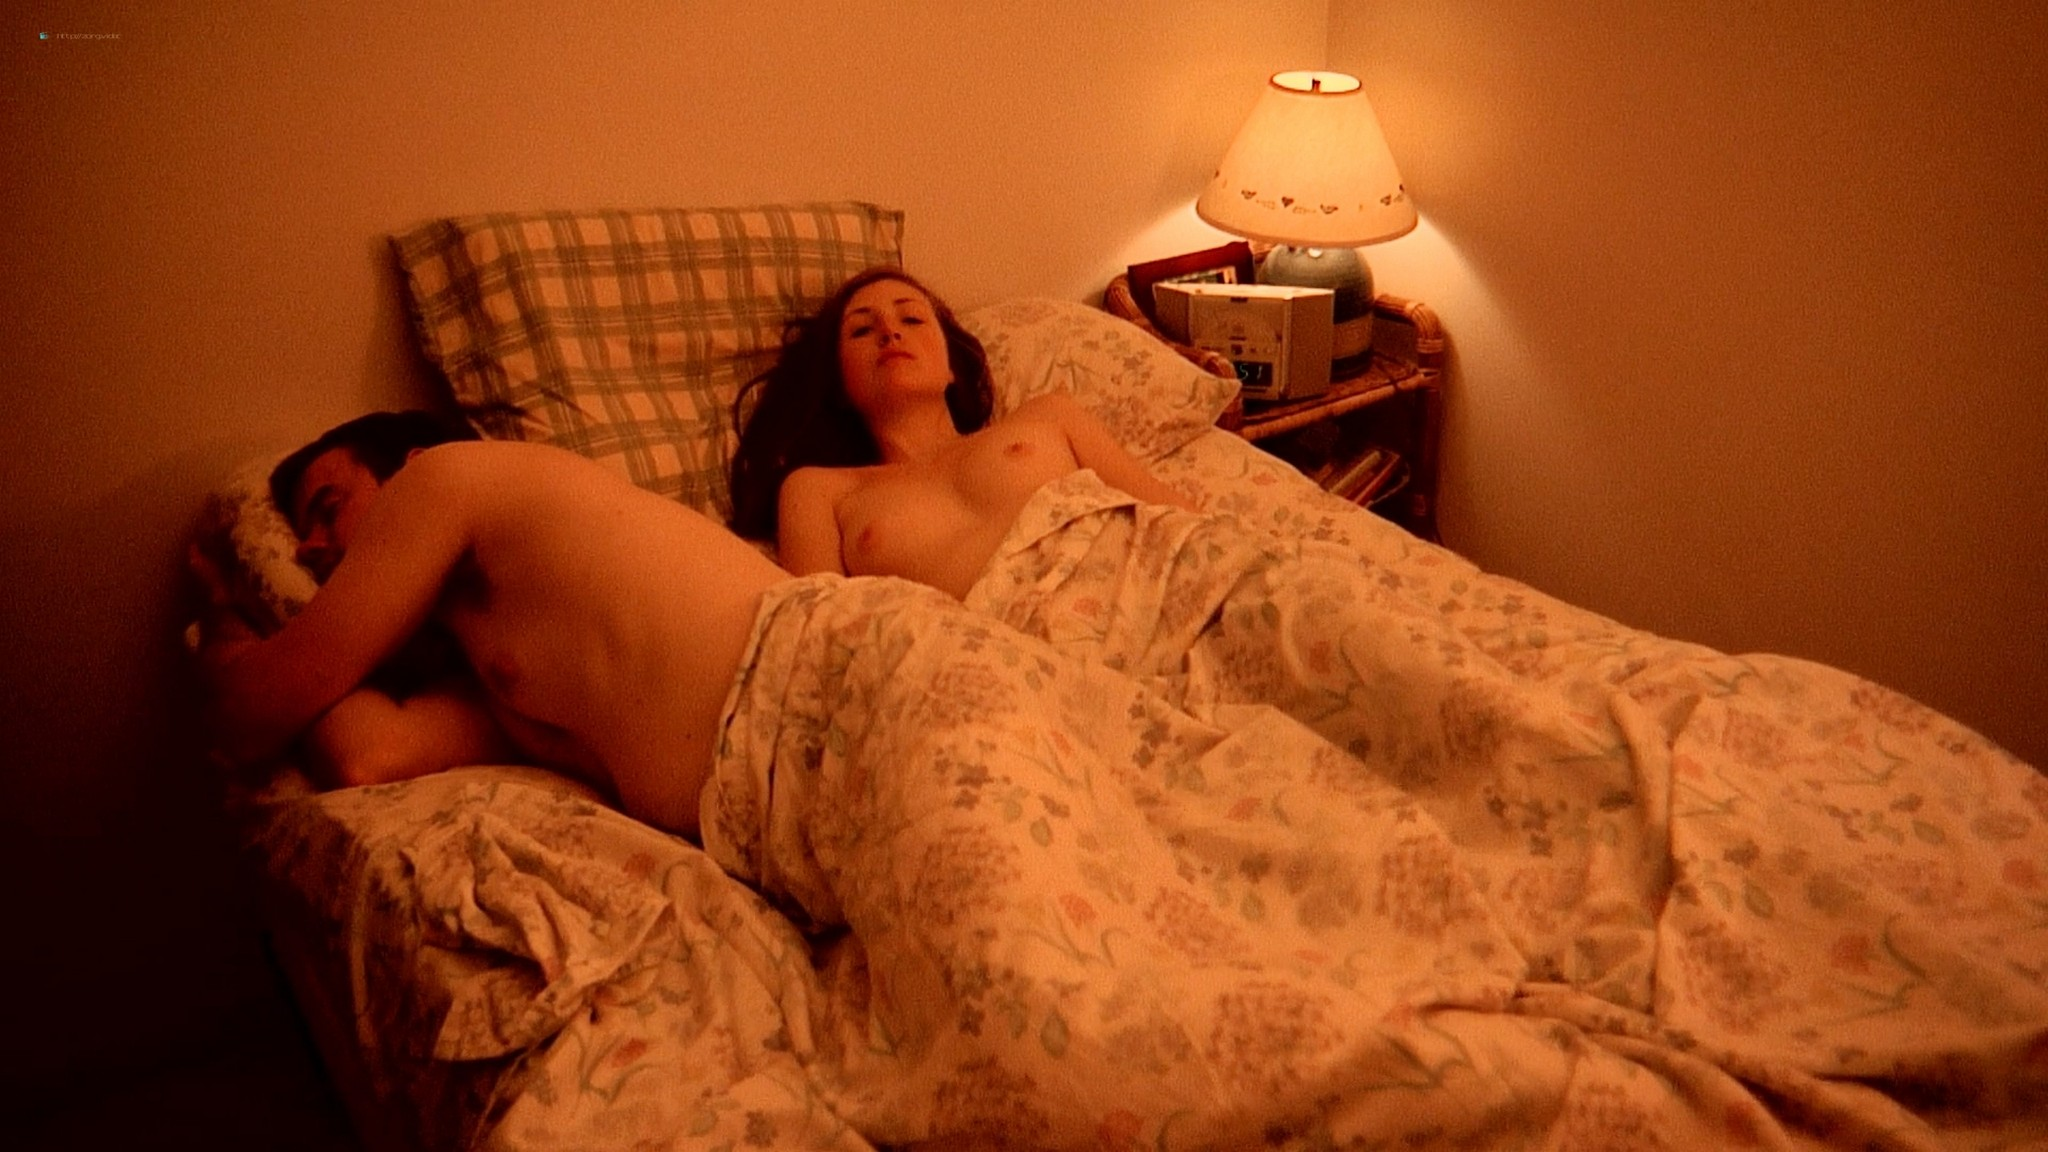 Amy Seimetz nude Kate Lyn Sheil nudeand other nude sex - Autoerotic (2010) HD 1080p Web (9)